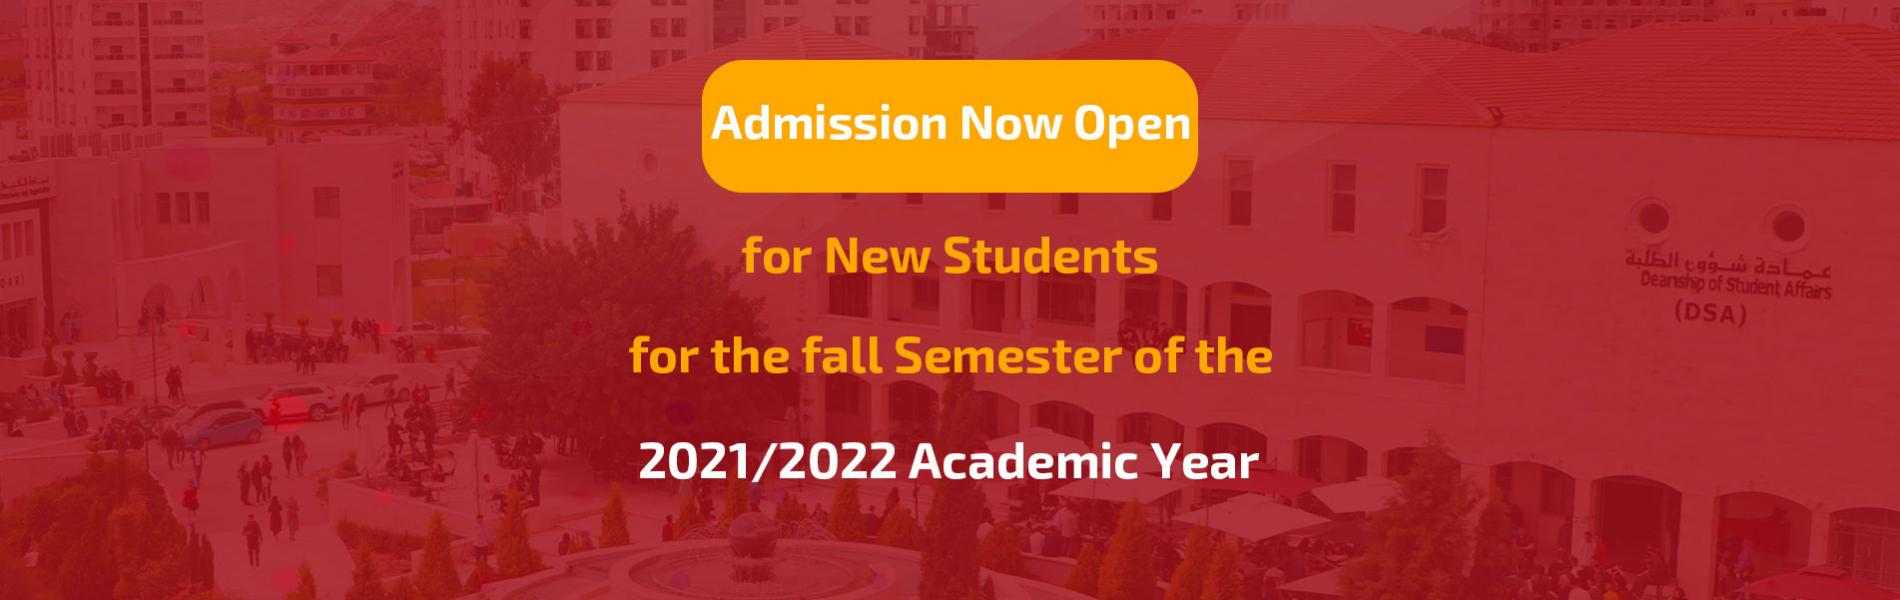 Announcement - Admission Applications are now being Accepted to the Bachelor's Degree and Intermedia